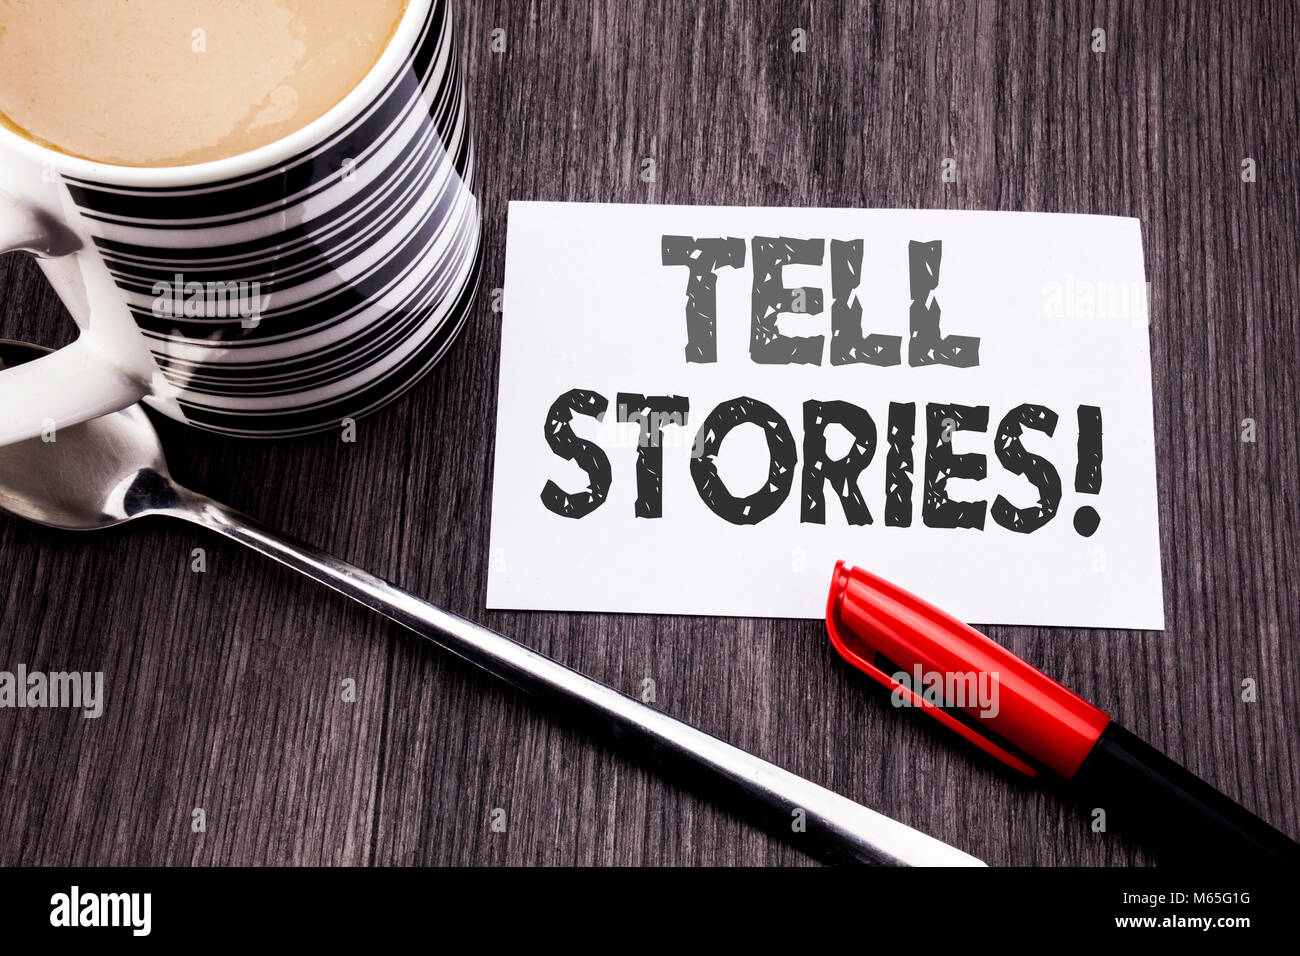 Conceptual hand writing text caption showing Tell Stories. Business concept for Storytelling Telling Story written - Stock Image